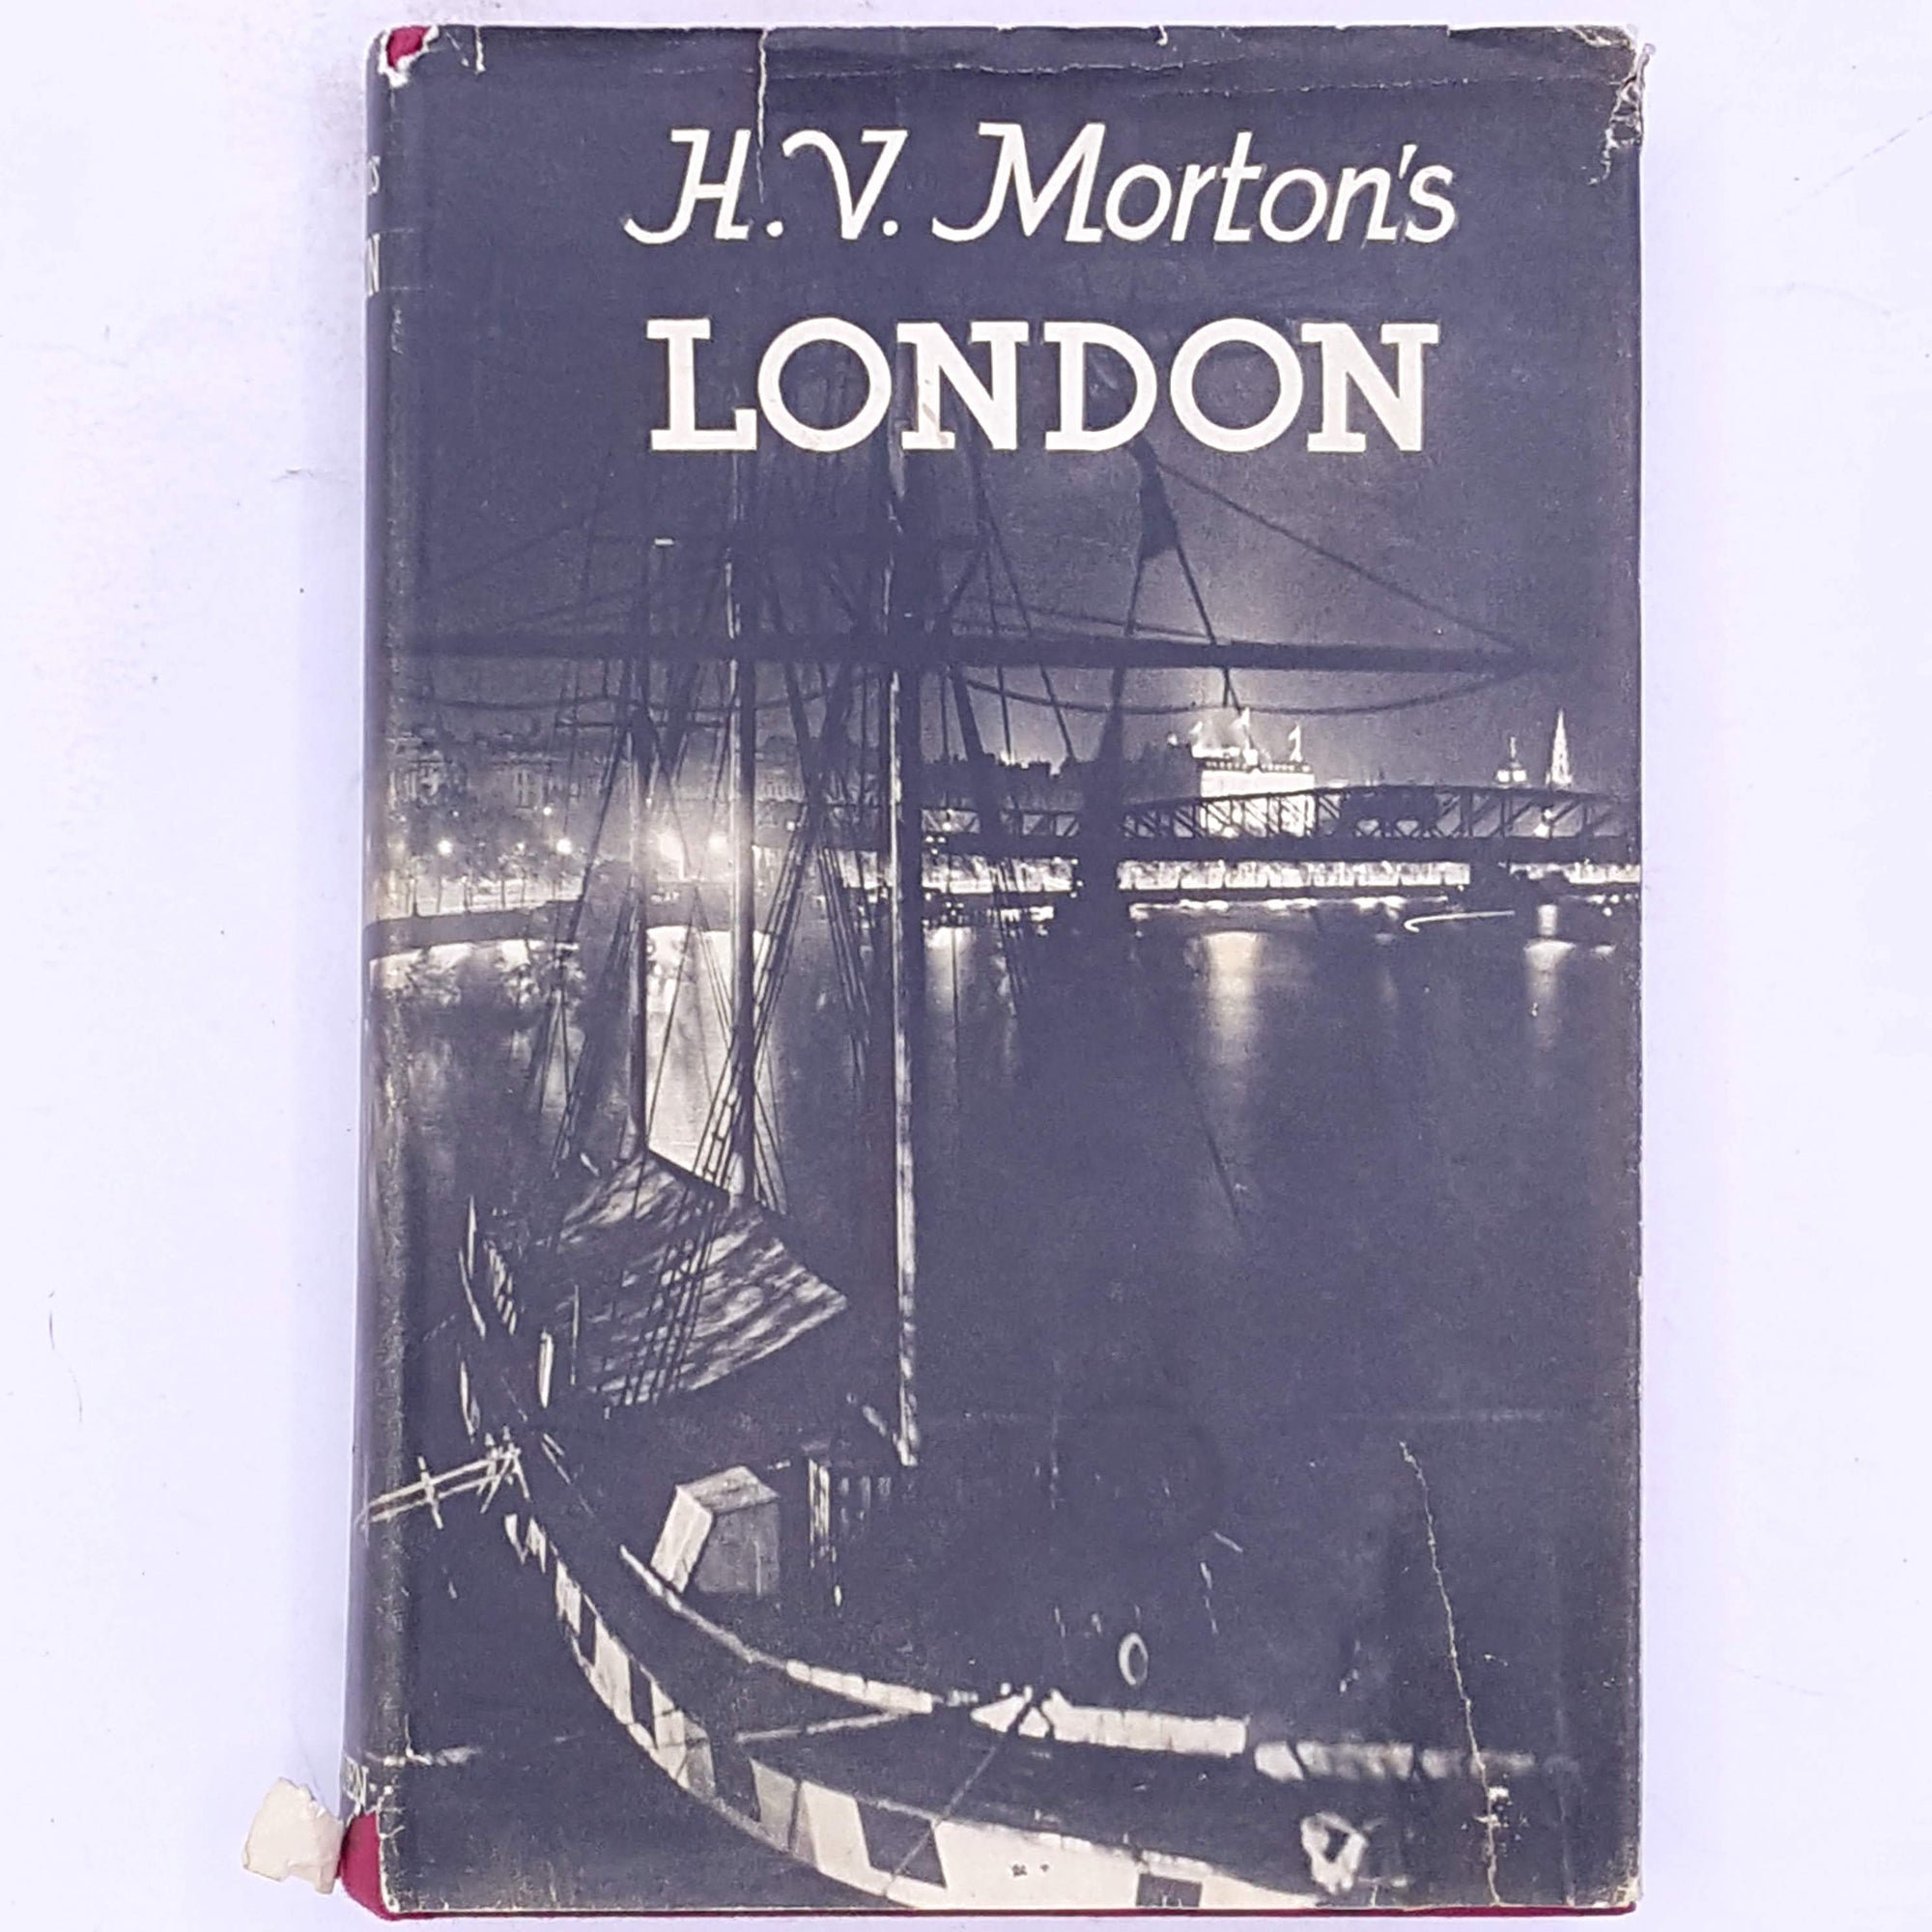 vintage-antique-classic-decorative-old-london-england-britain-uk-history-geography-h.v.-morton-london-patterned-books-country-house-library-thrift-